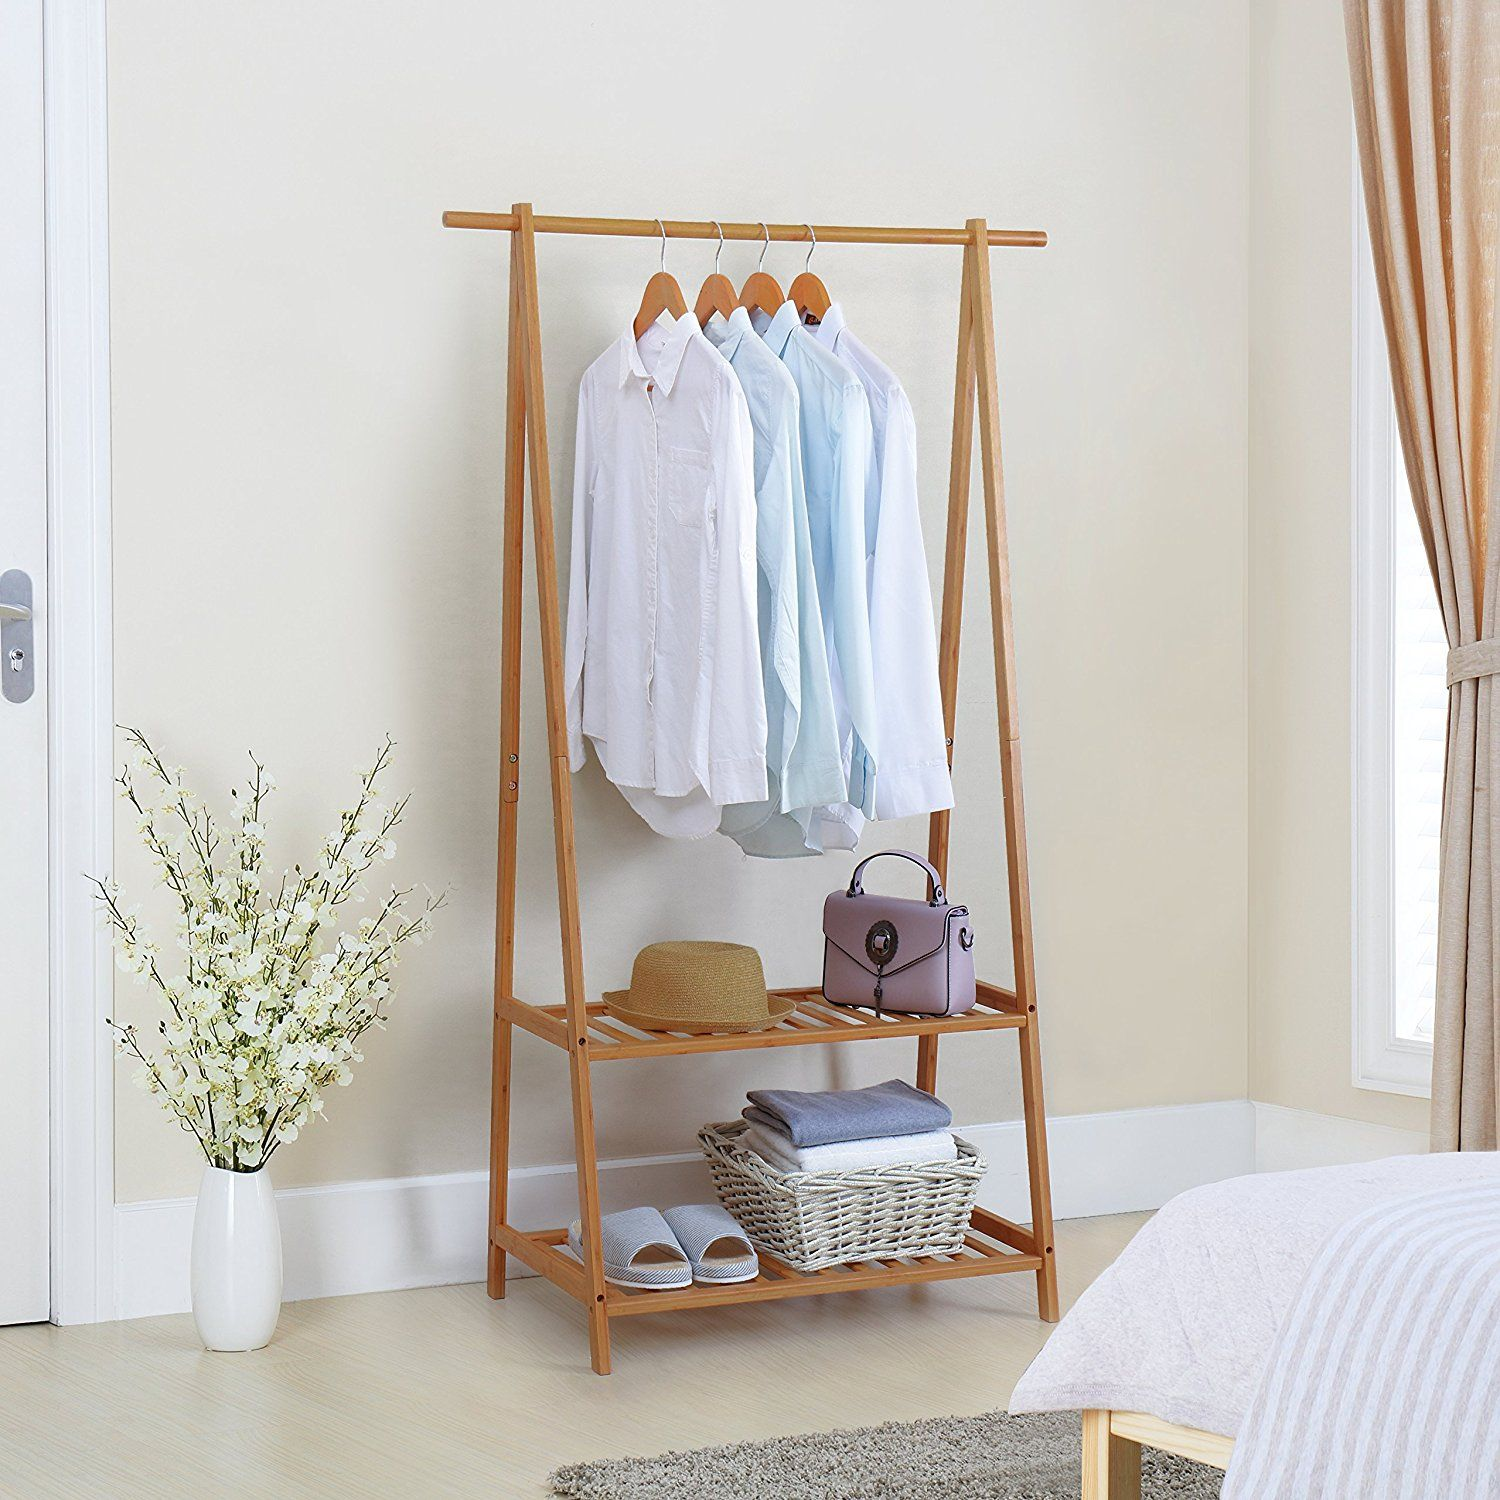 Amazon.com: Finnhomy Bamboo Clothes Rack Portable Extra Large Garment Rack  2 Tire Storage Box Shelves For Entryway And Bed Room: Home U0026 Kitchen